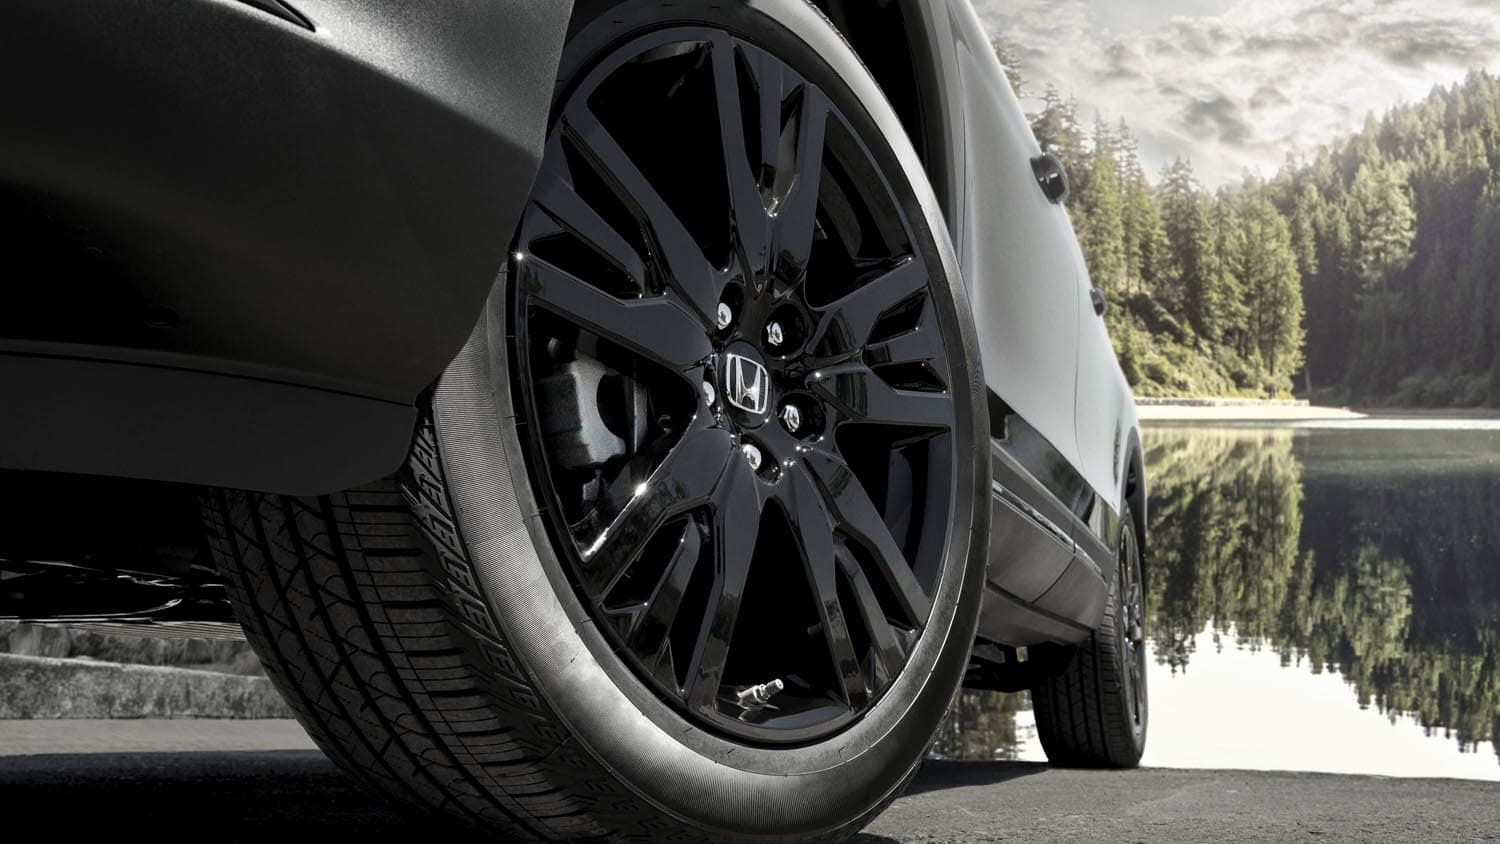 Honda accessories, tires, and rims